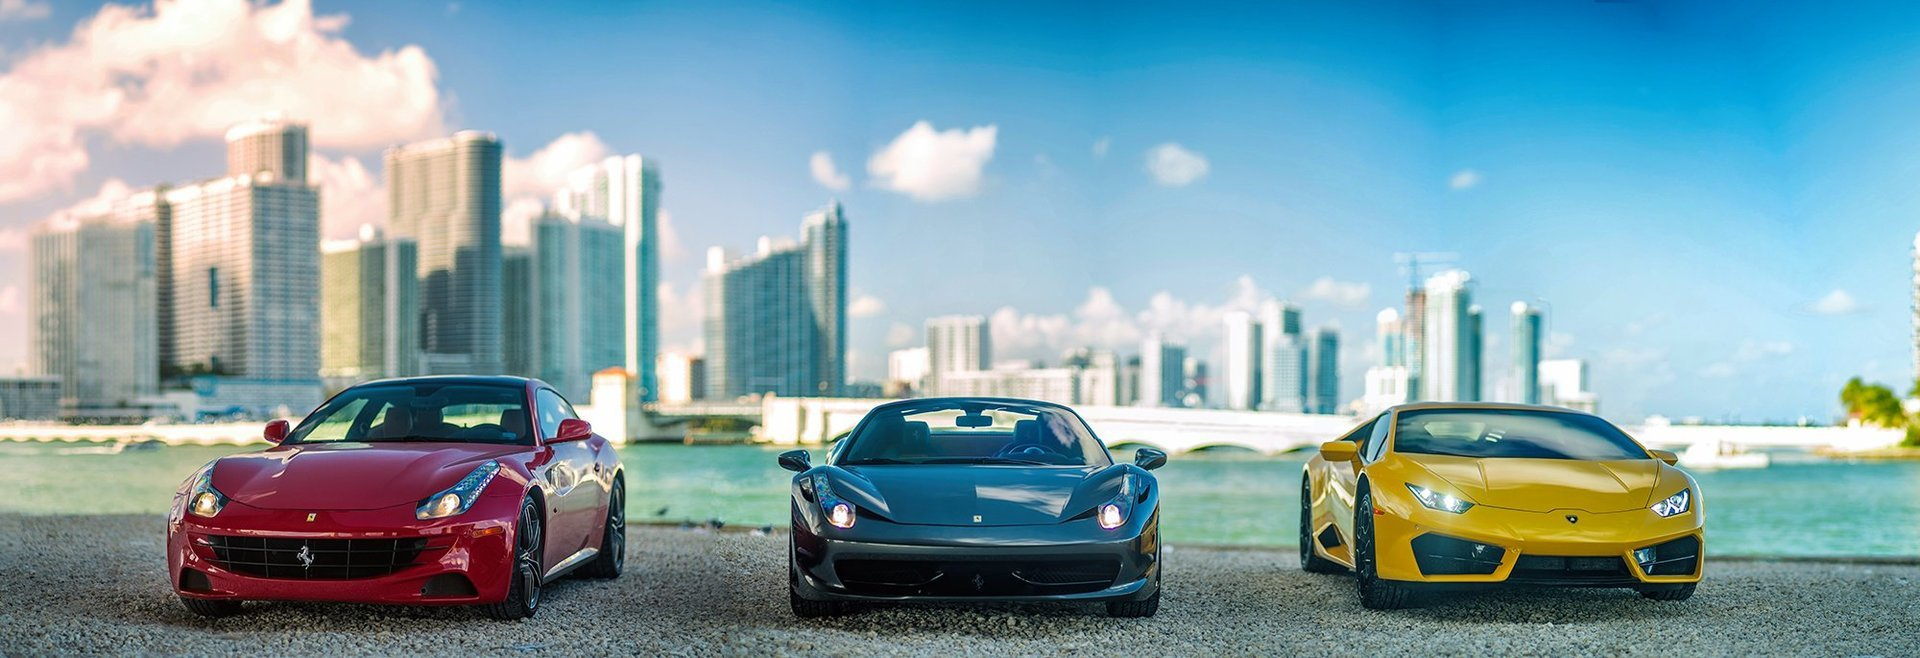 Car Rental South Beach Collins Ave